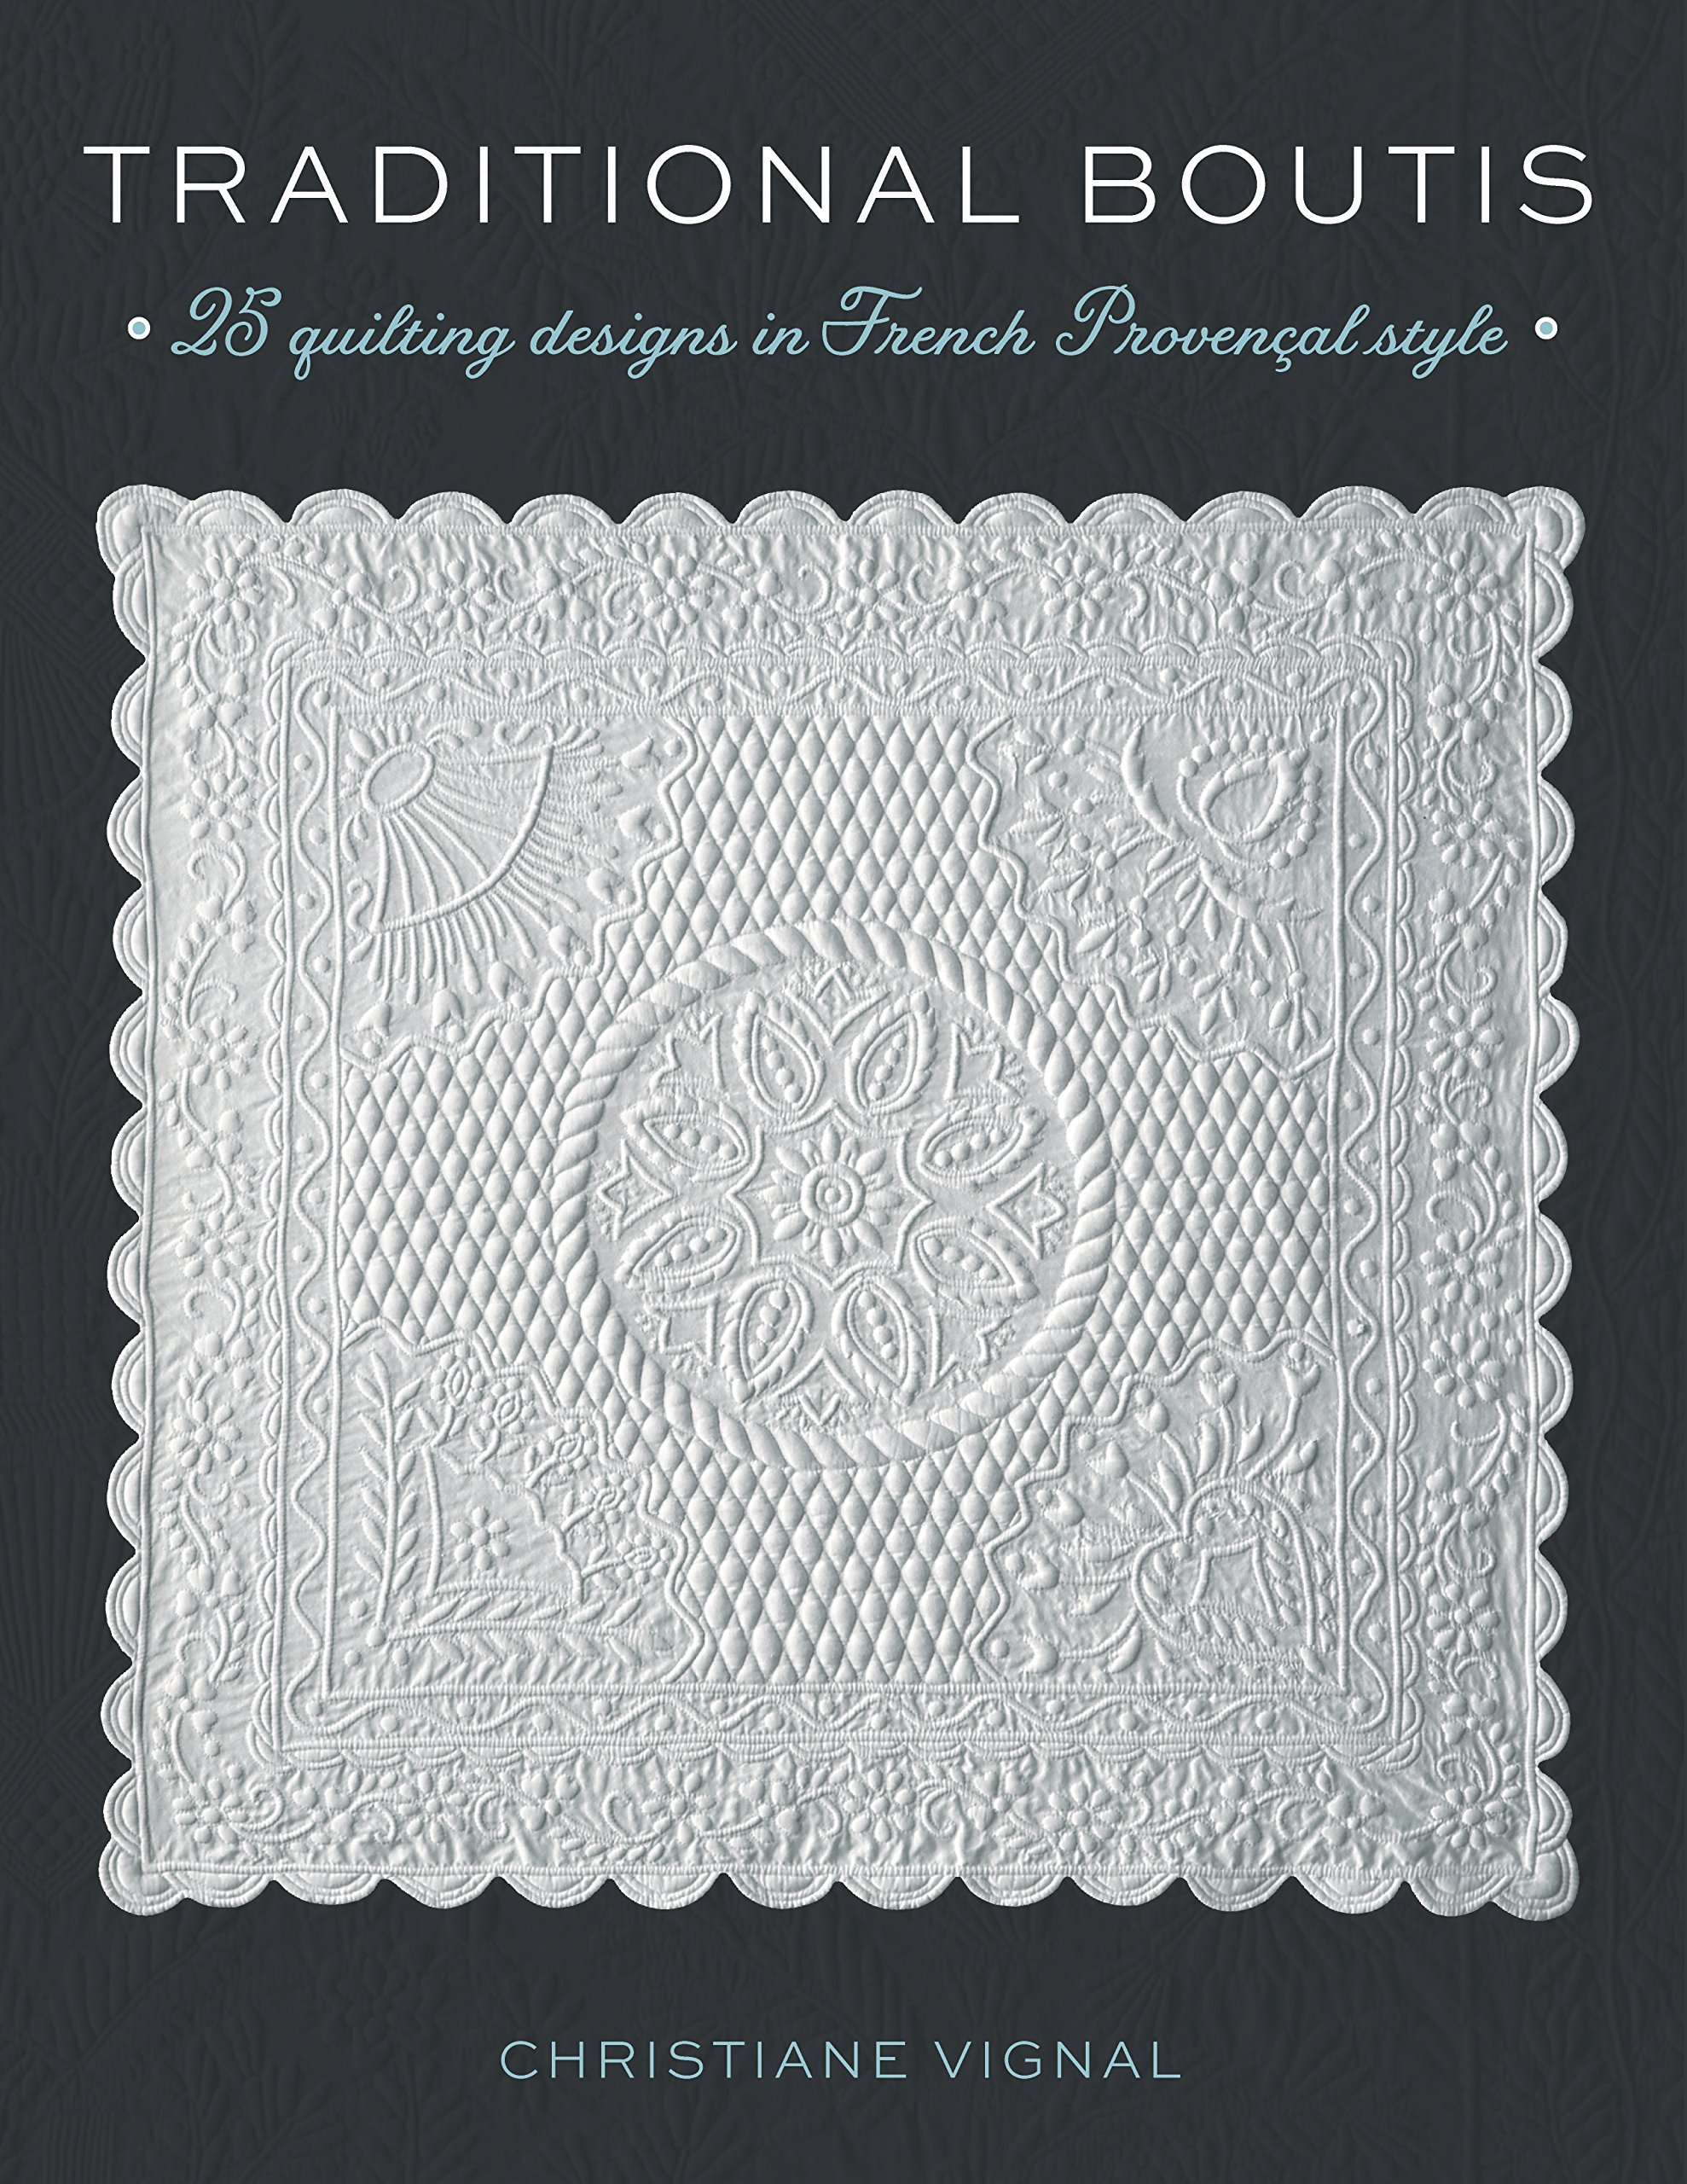 Traditional Boutis: 25 Quilting Designs In French Provençal Style:  Christiane Vignal: 9780811719797: Amazon.com: Books